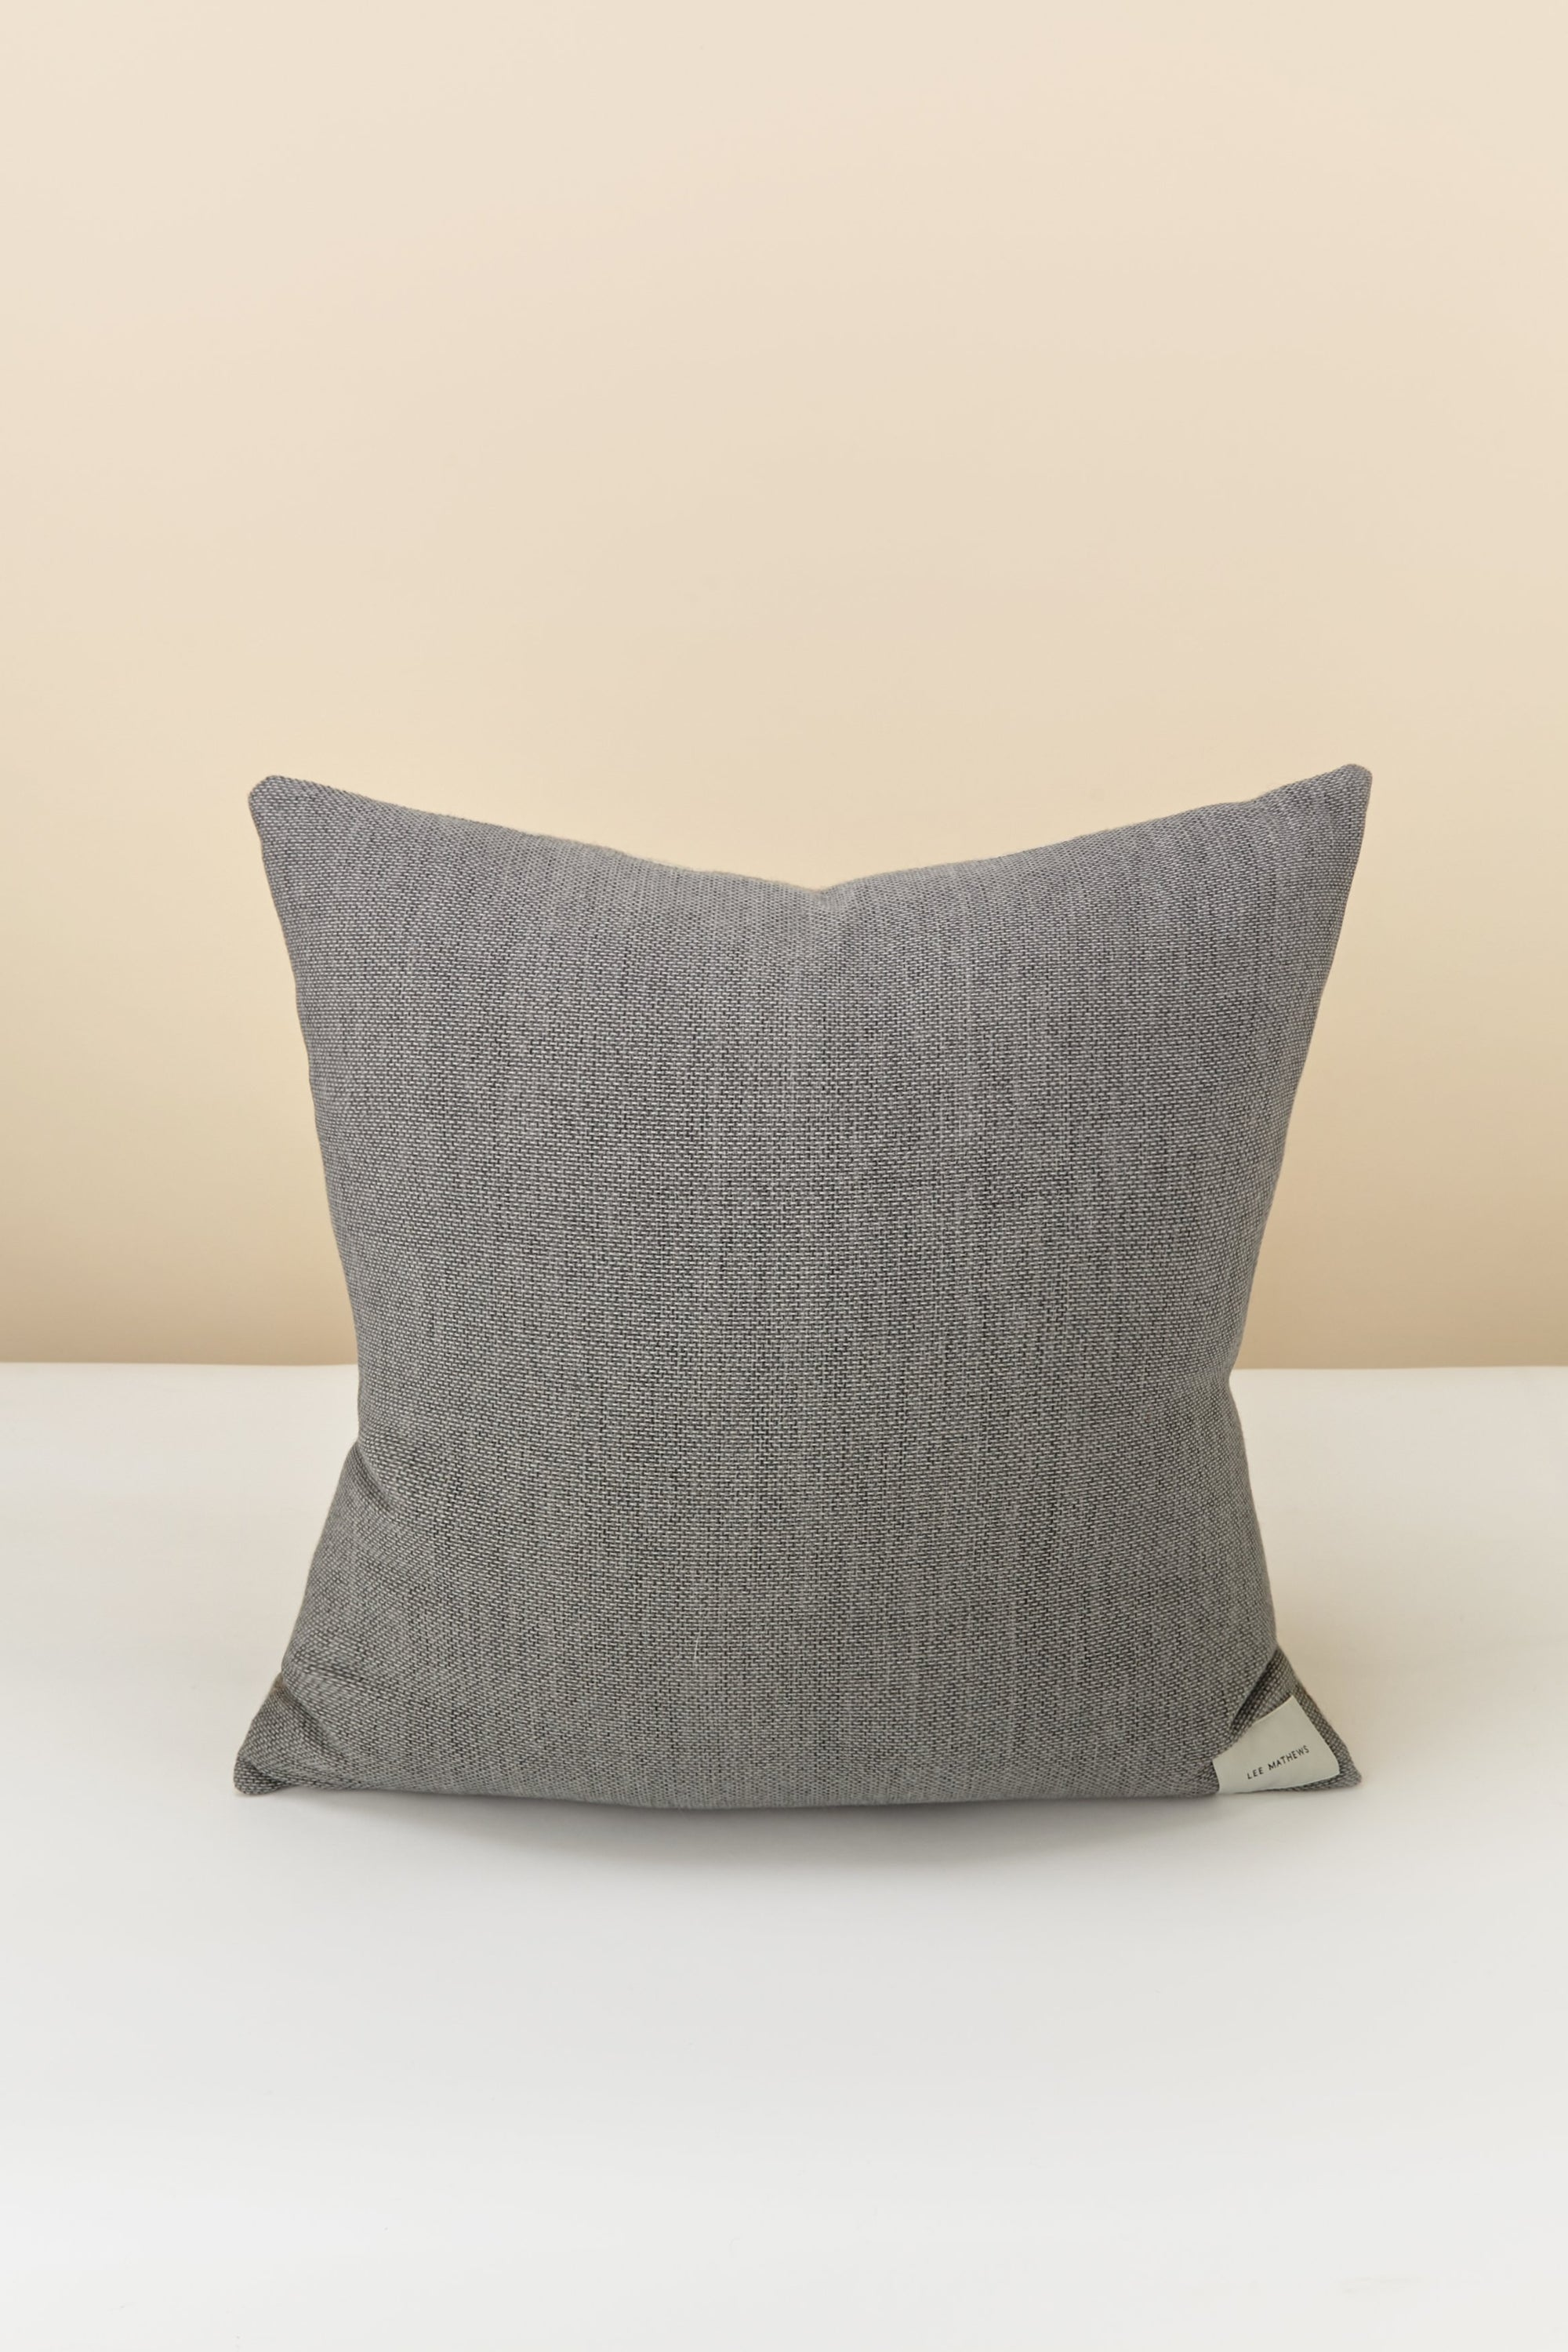 Lee Mathews Retro Square Cushion - Small